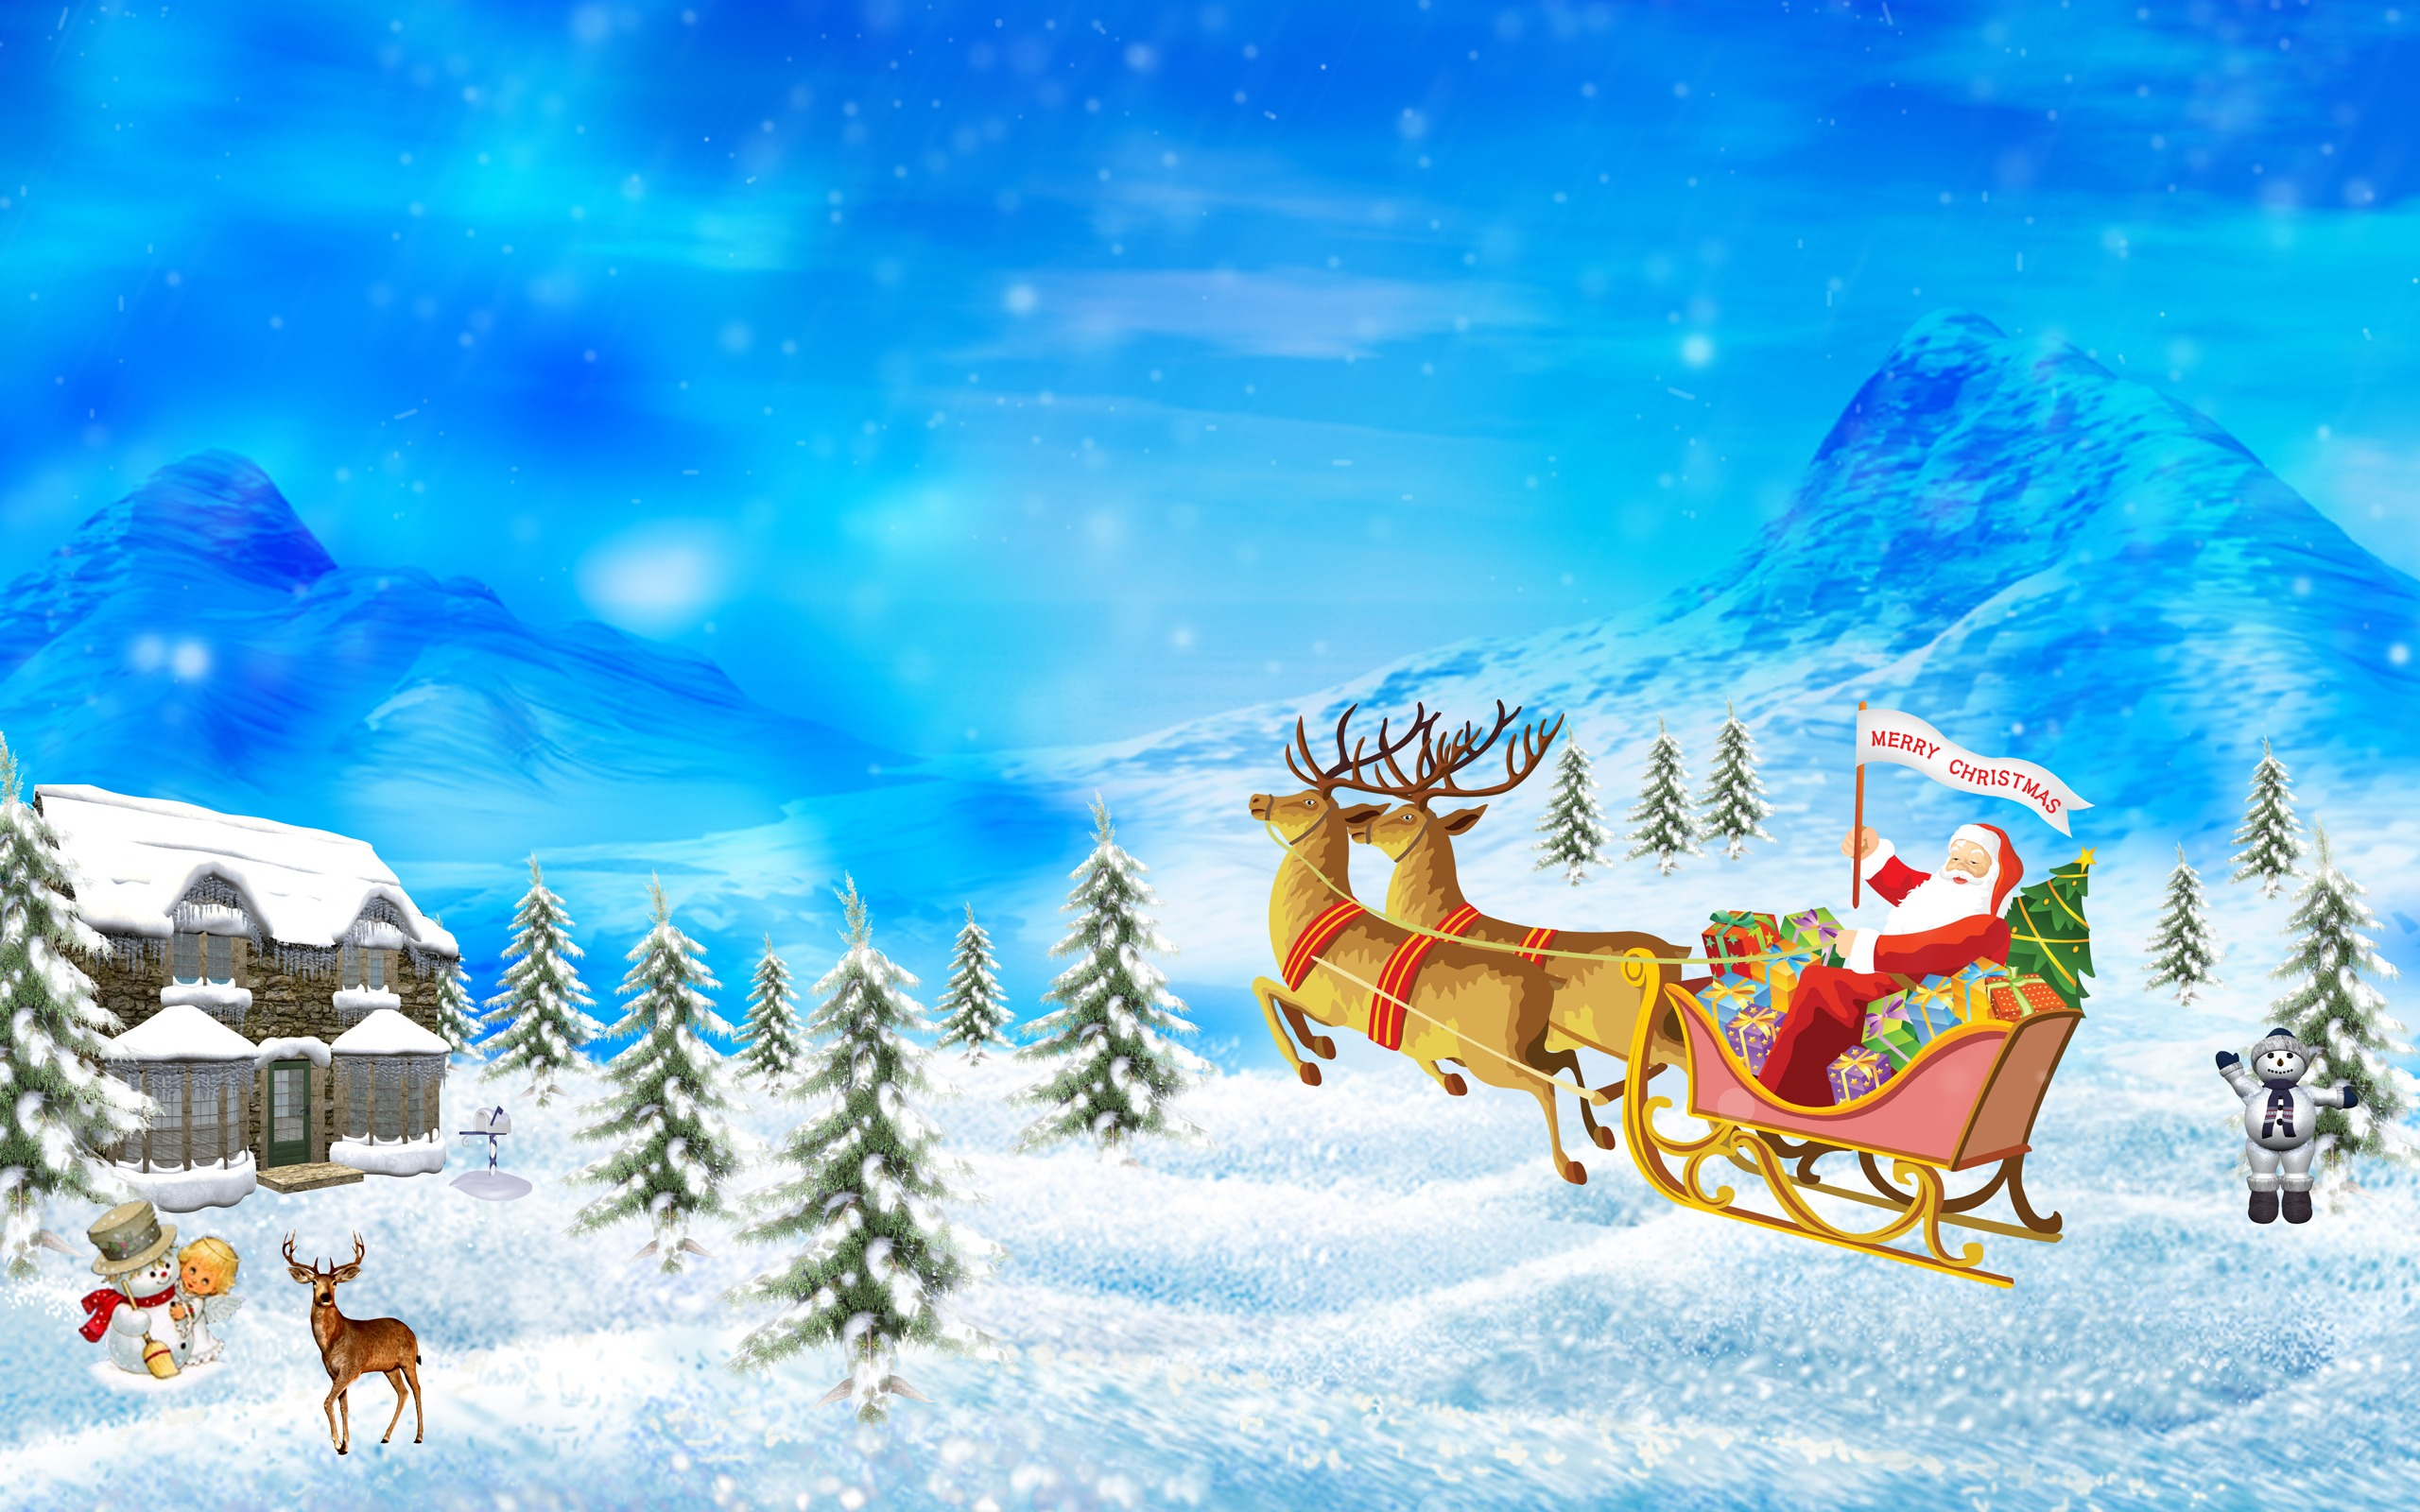 merry christmas drawing wallpaper christmas holidays wallpapers in jpg format for free download all free download com